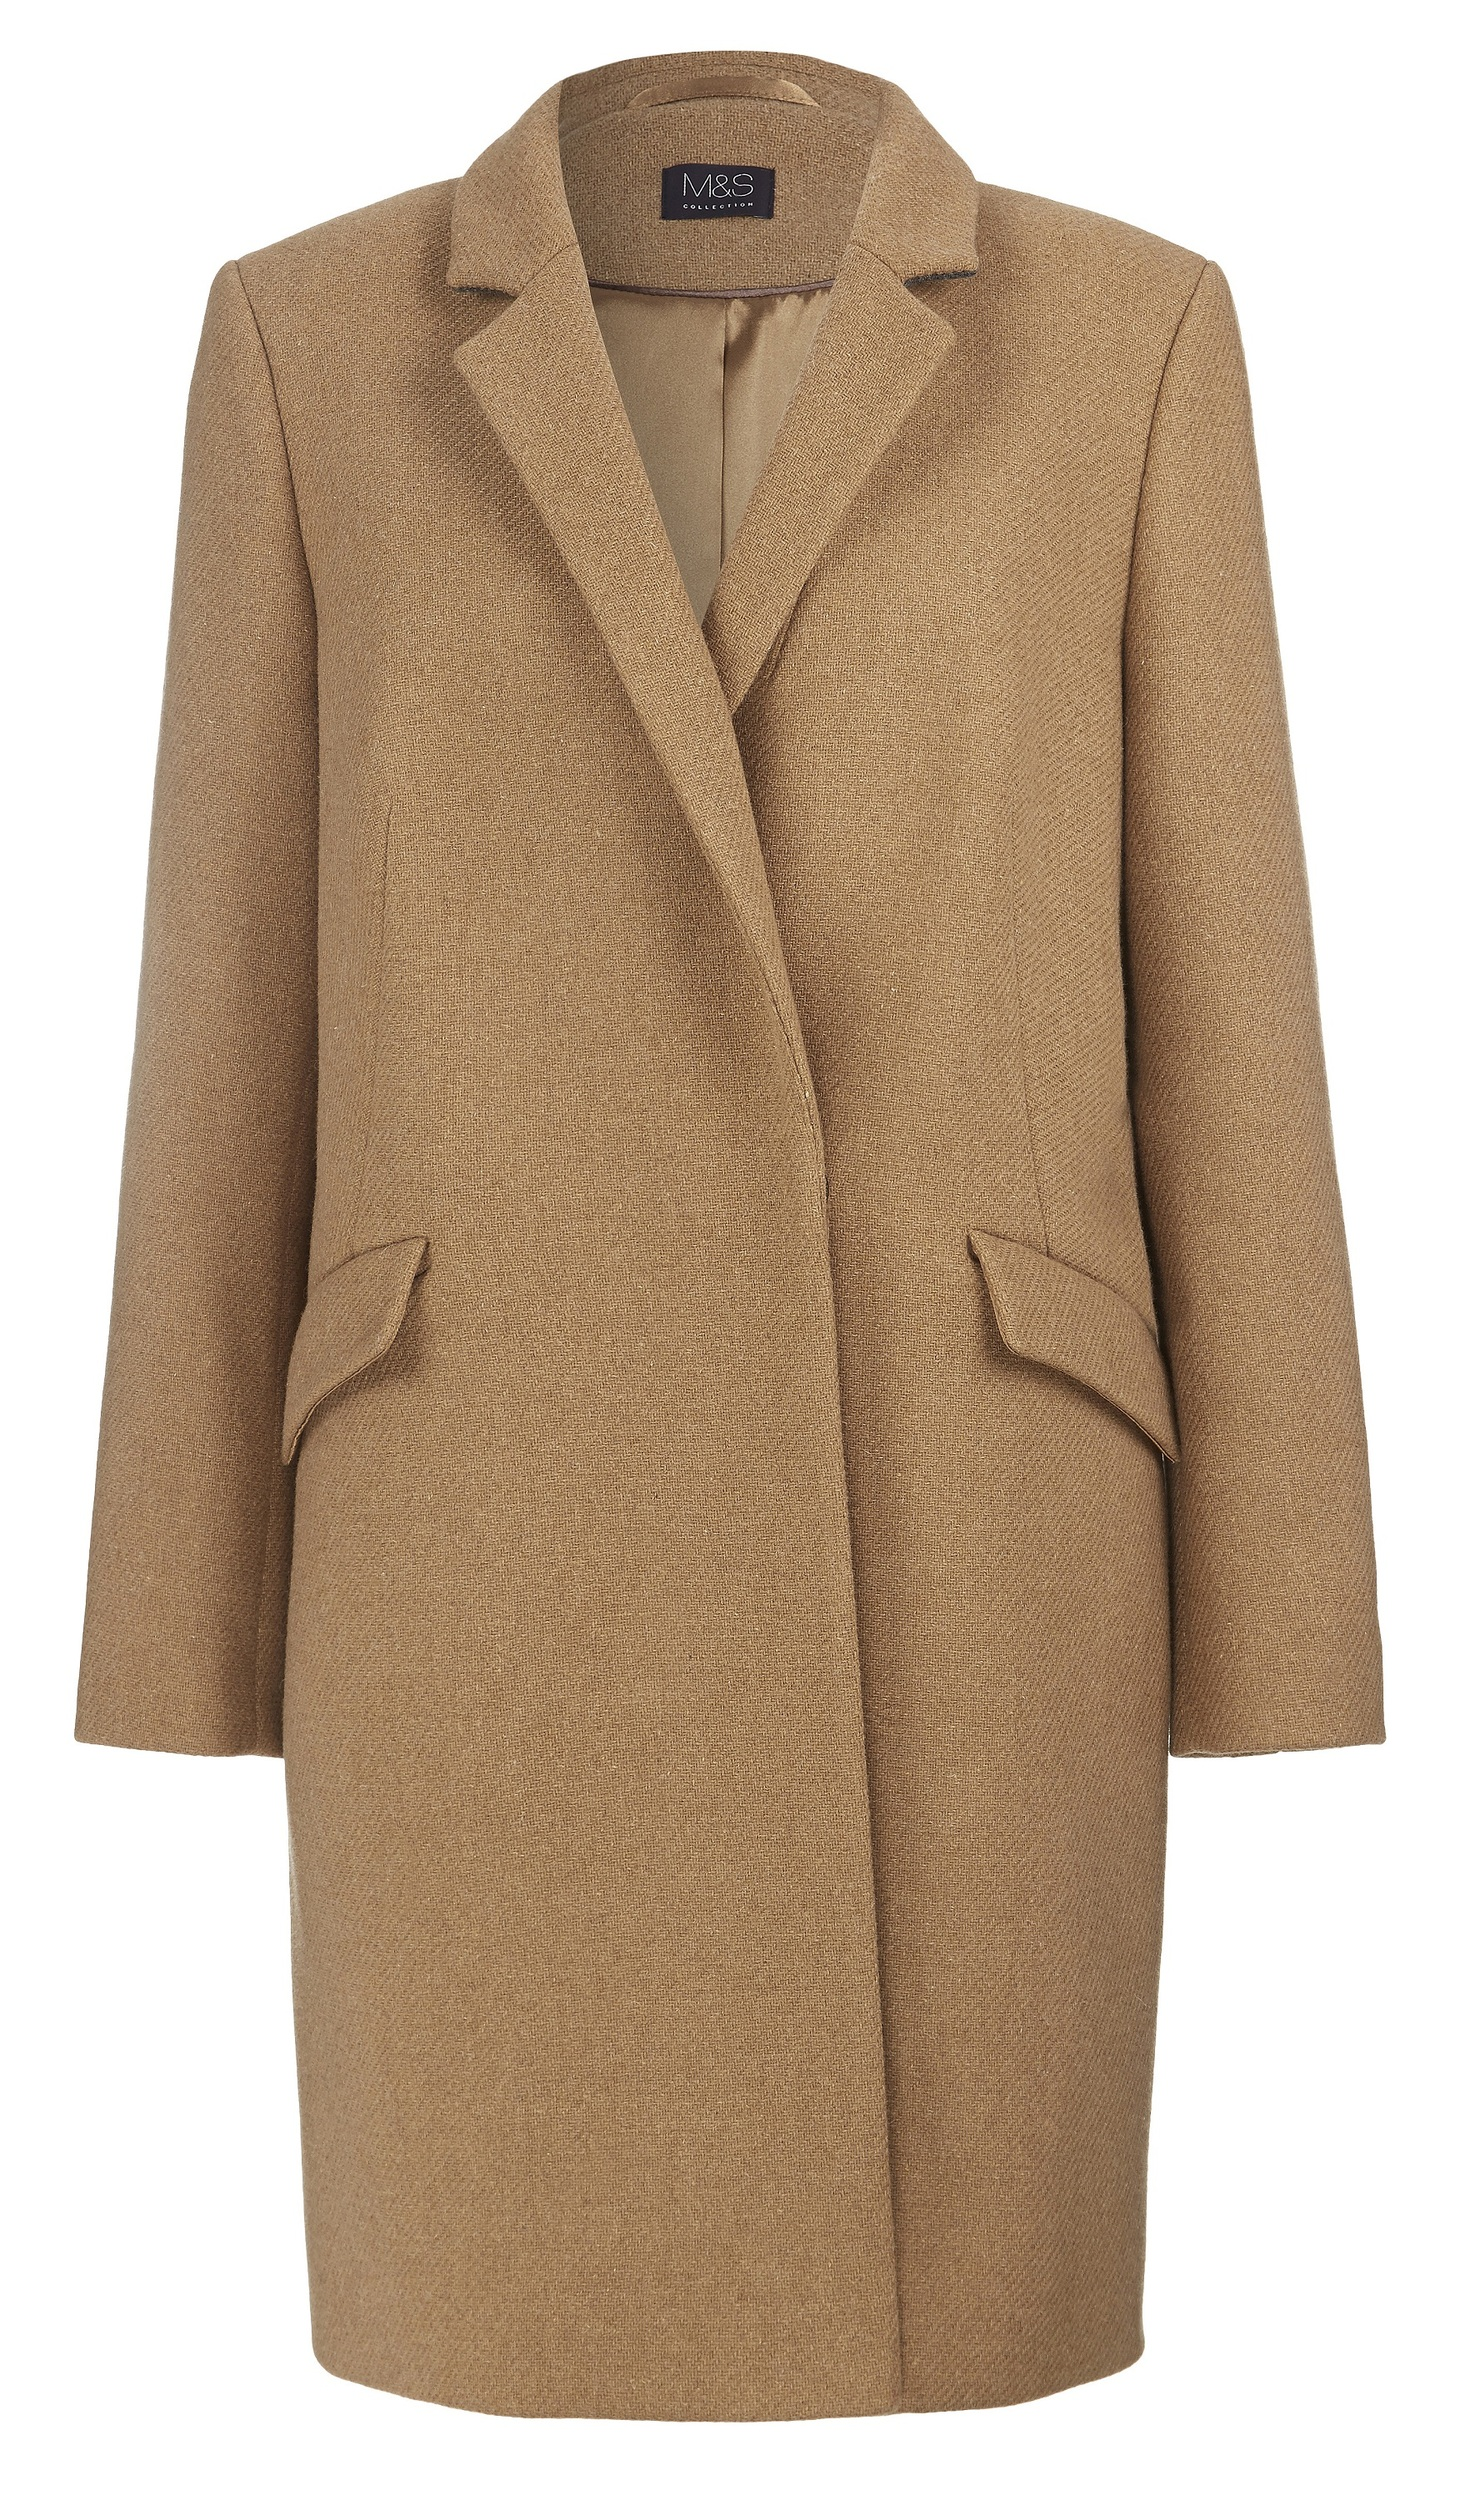 Marks and spencer womens coat